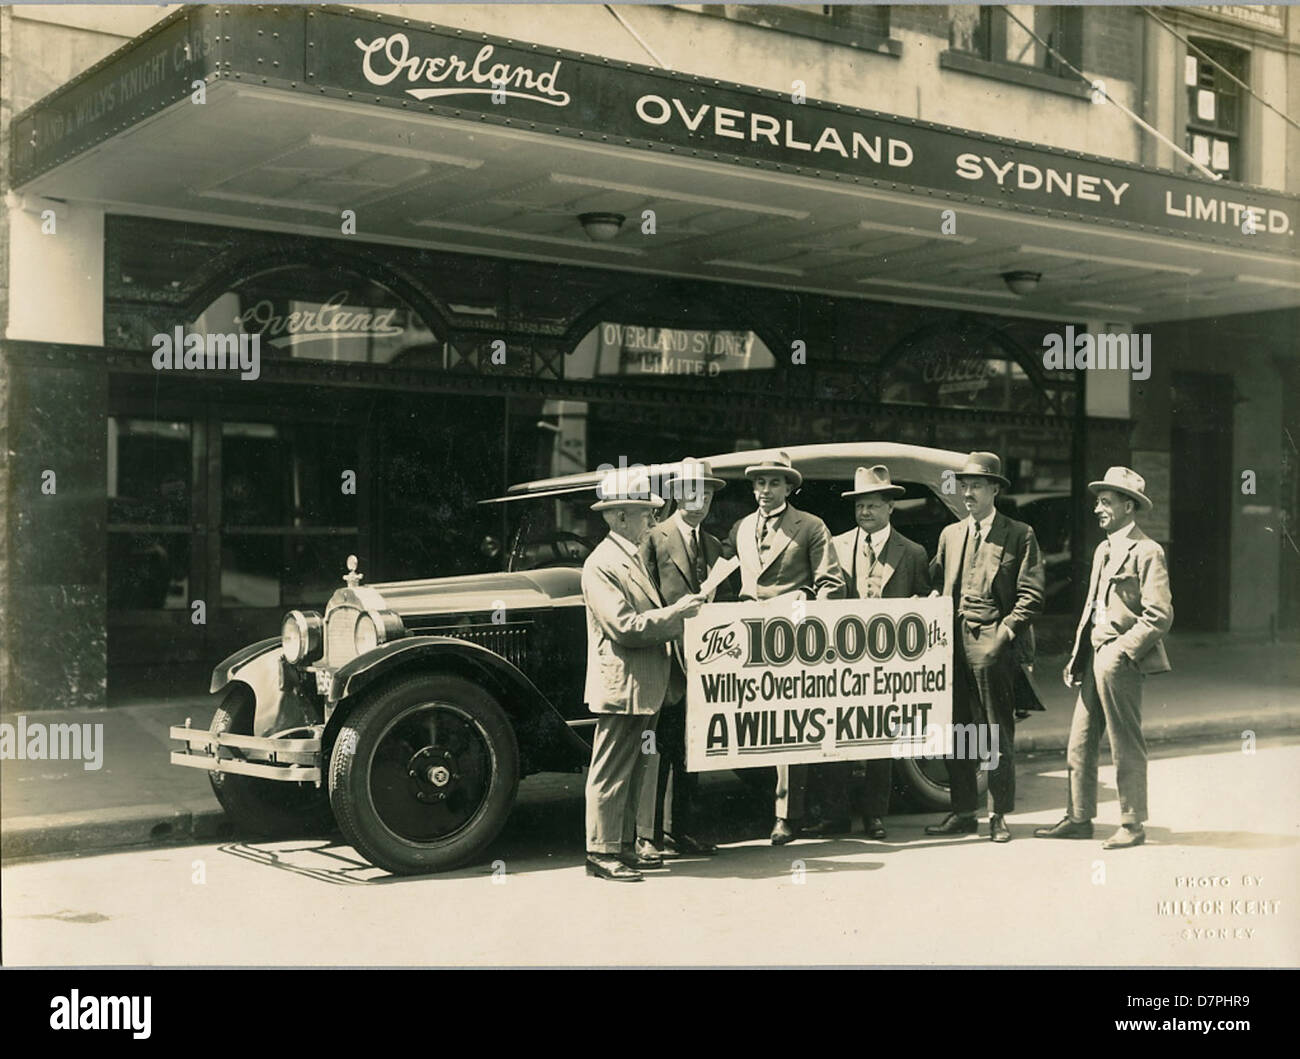 The 100,000th Willys-Overland exported car, outside Overland Sydney Ltd office, 1920 - 1929 - Stock Image